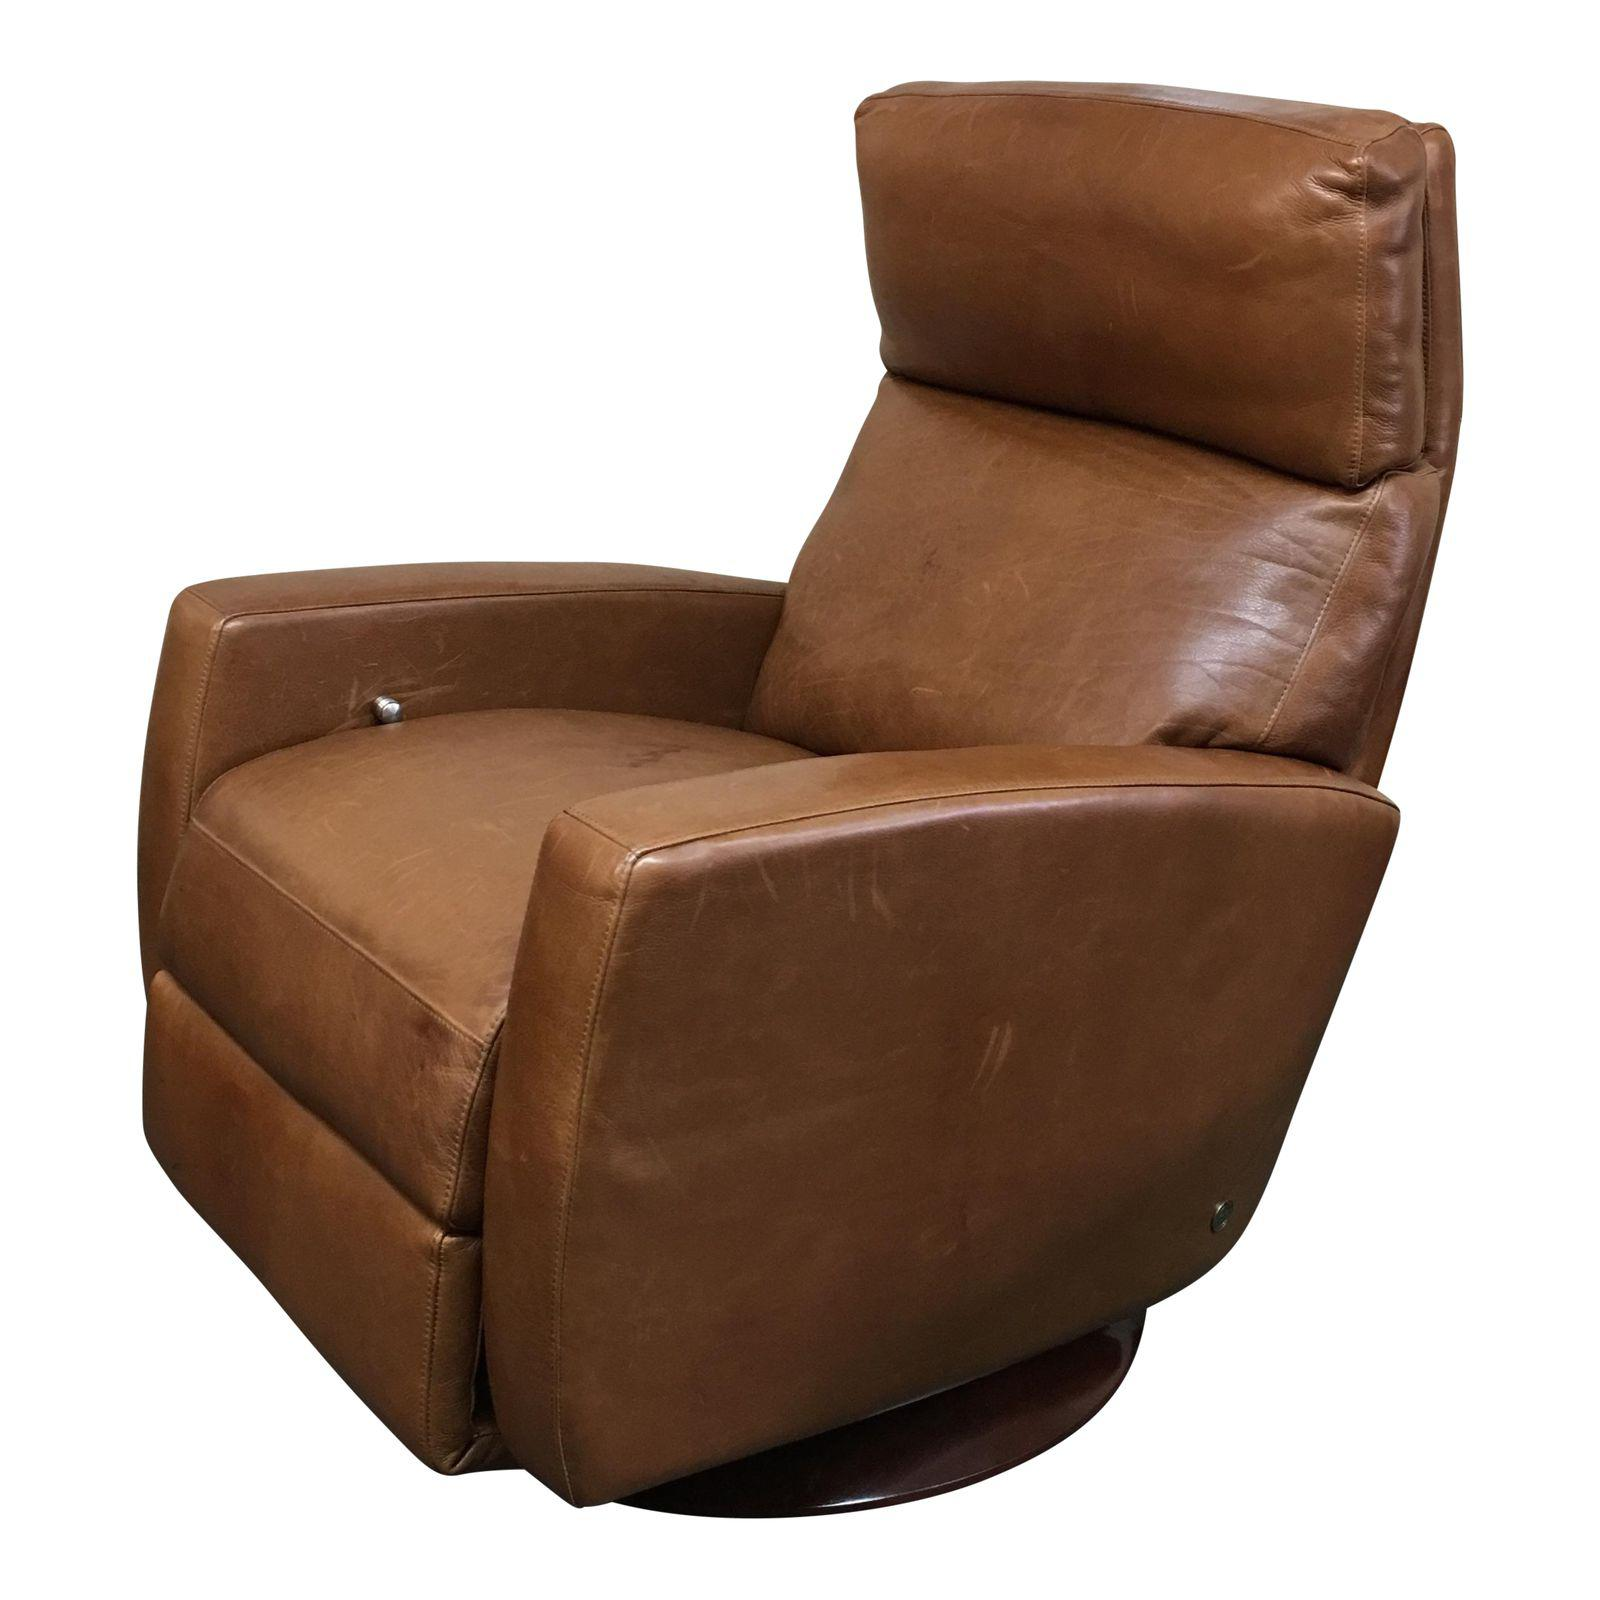 Stupendous American Leather Recliner In Cognac Color Leather Design Short Links Chair Design For Home Short Linksinfo